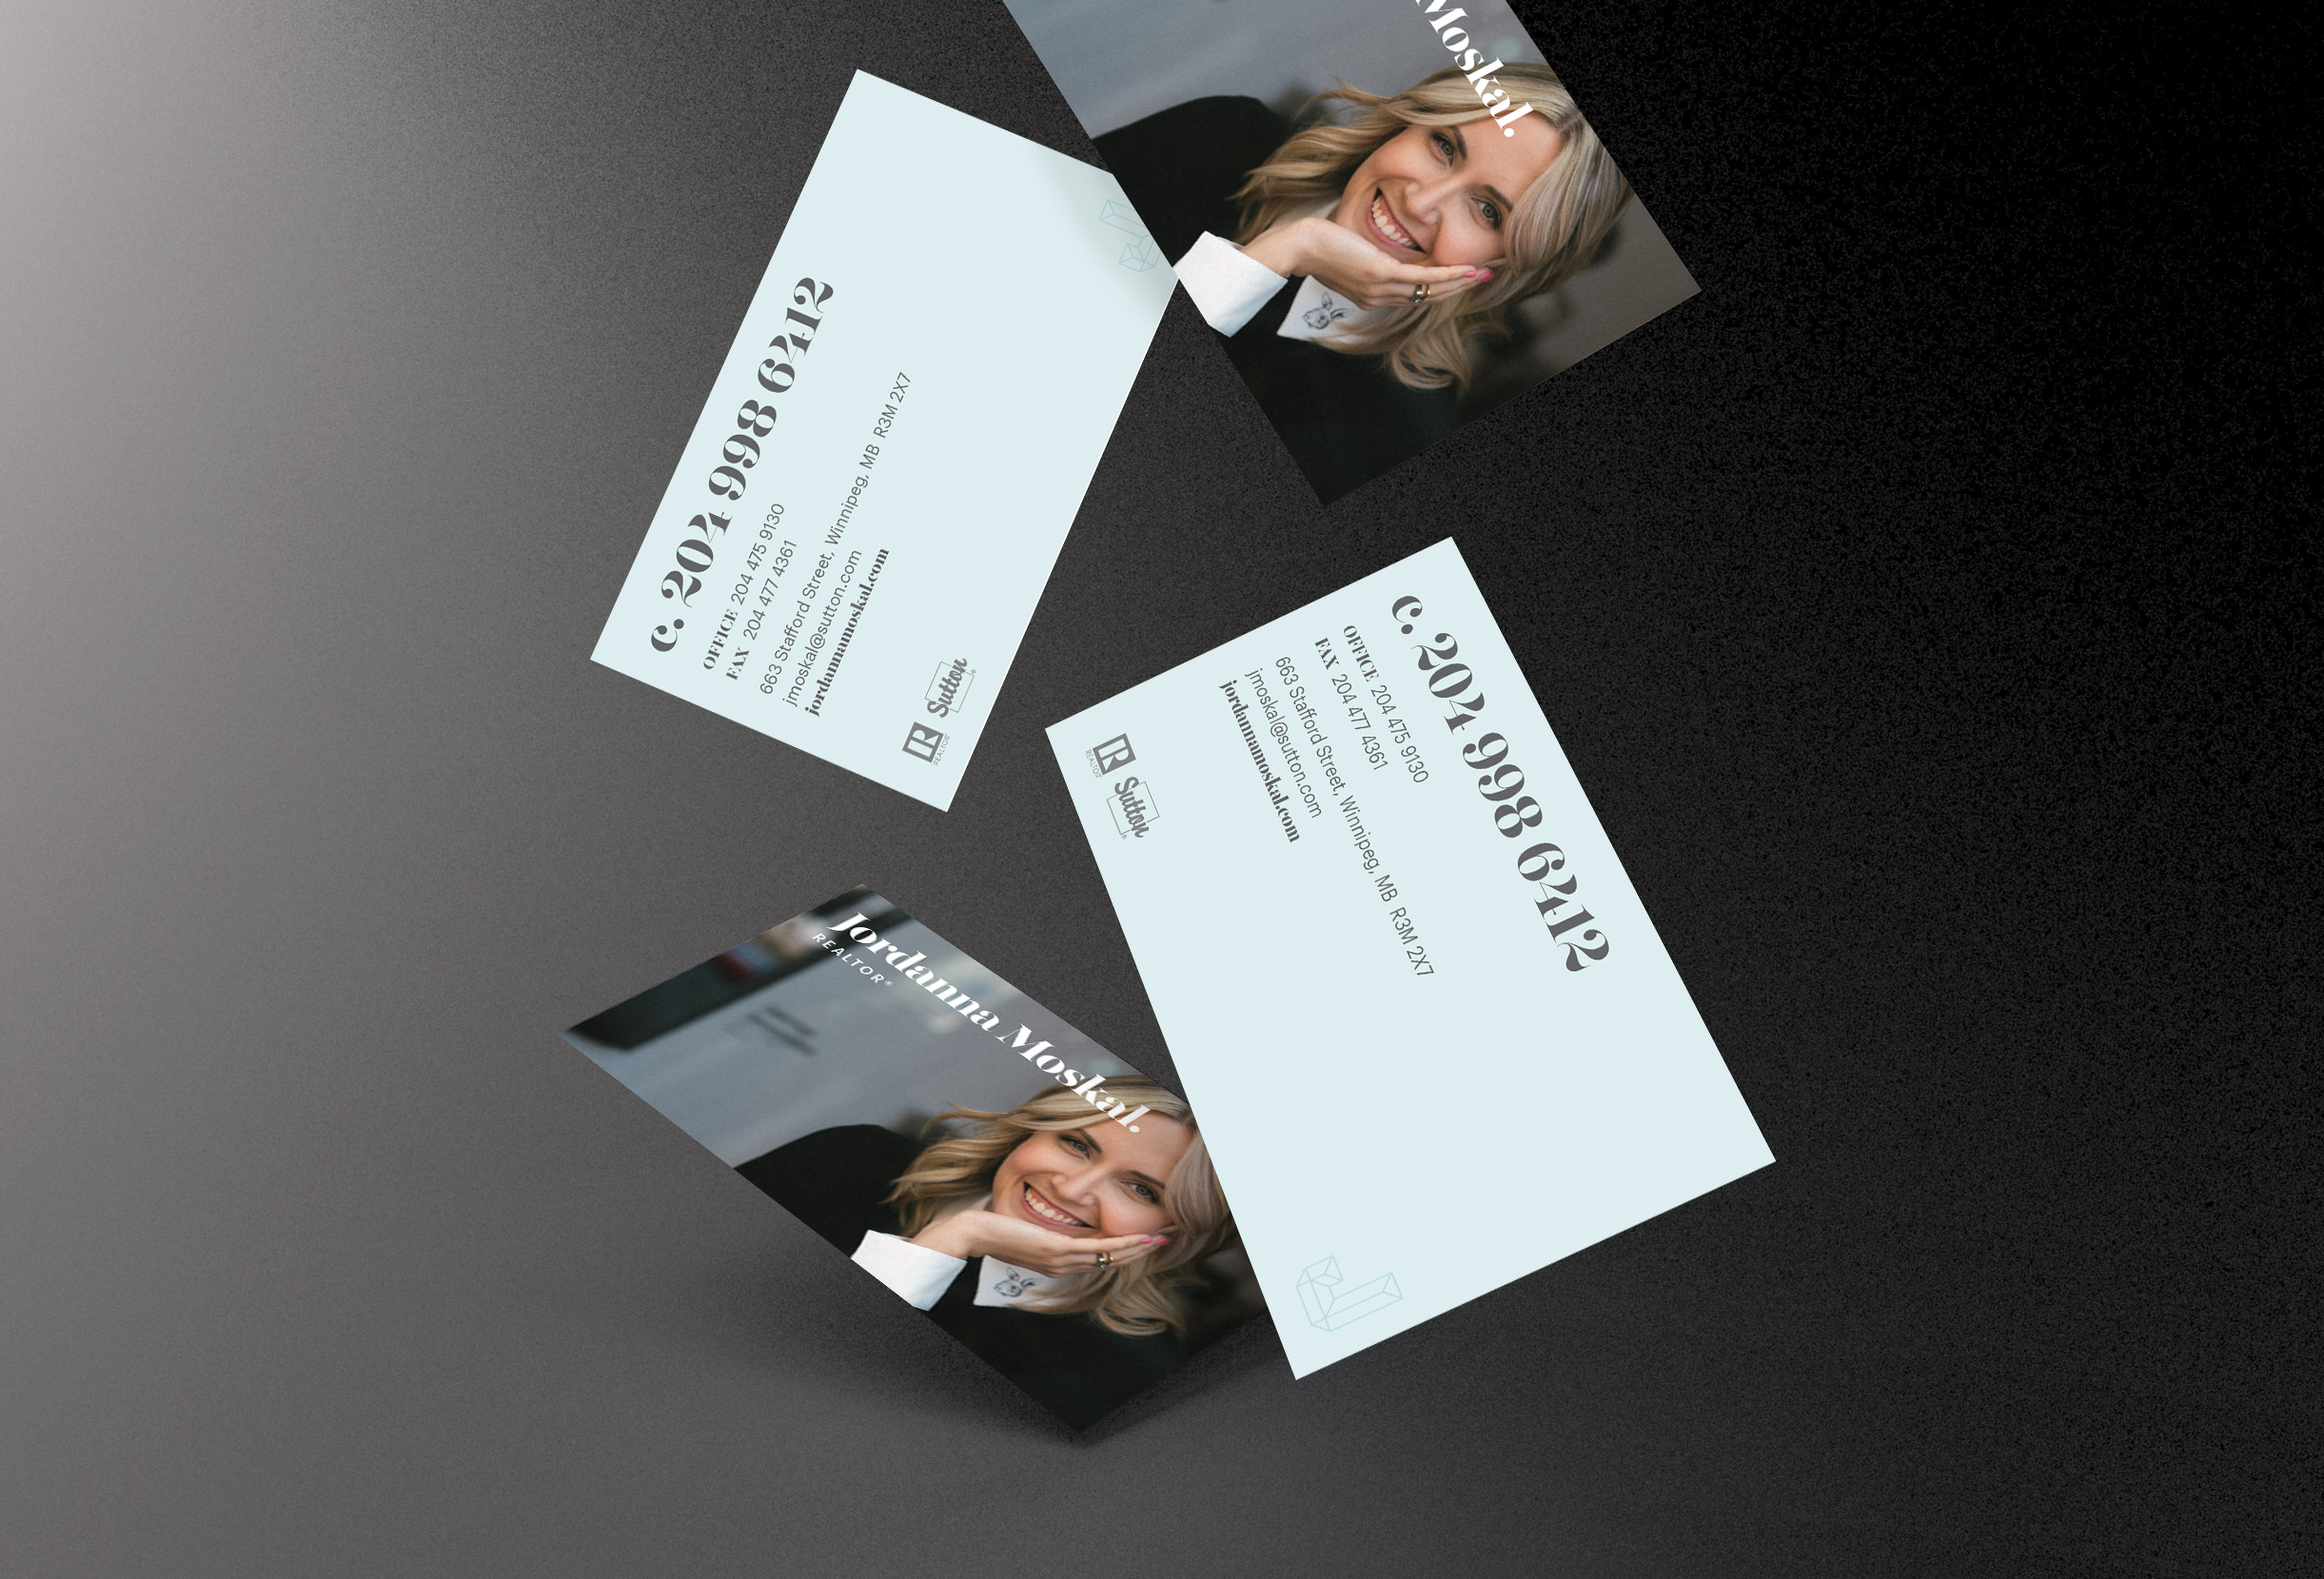 Jordanna moskal realtor business cards fusion a creative agency clientjordanna moskal realtorprojectbusiness cards share reheart Image collections